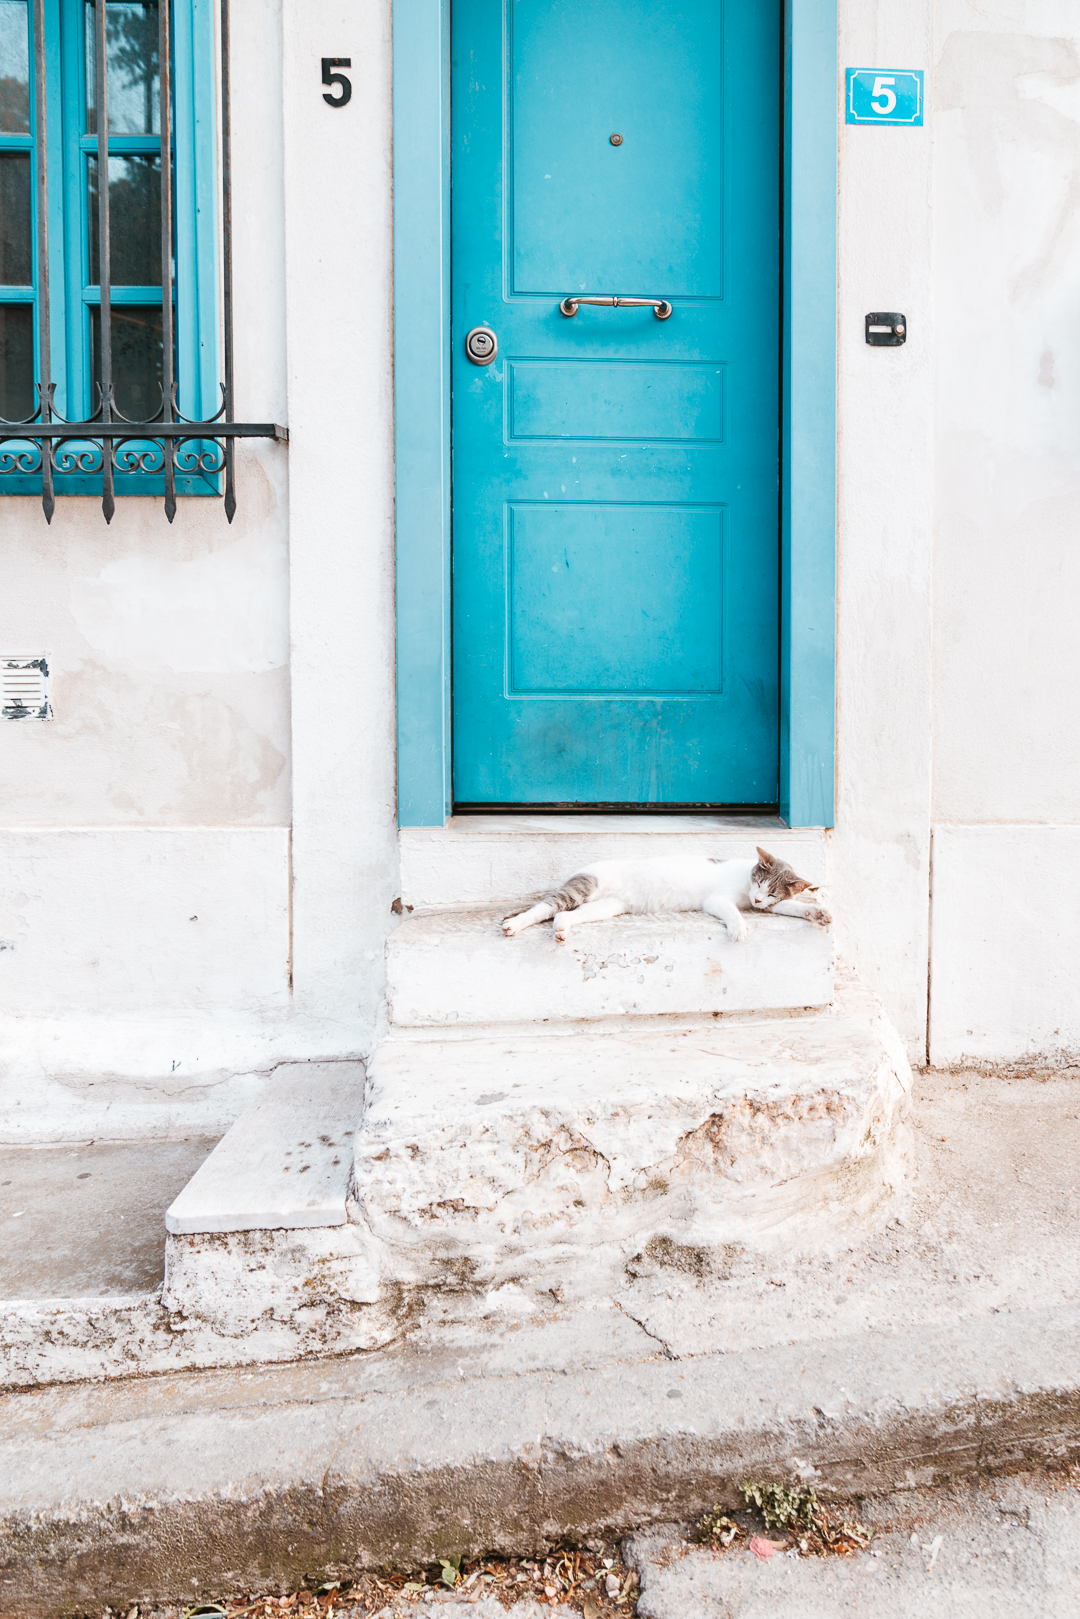 Ashley_Mathieu_Travel_Photos_Greece_Athens_Colorful-Door_Cat.jpg